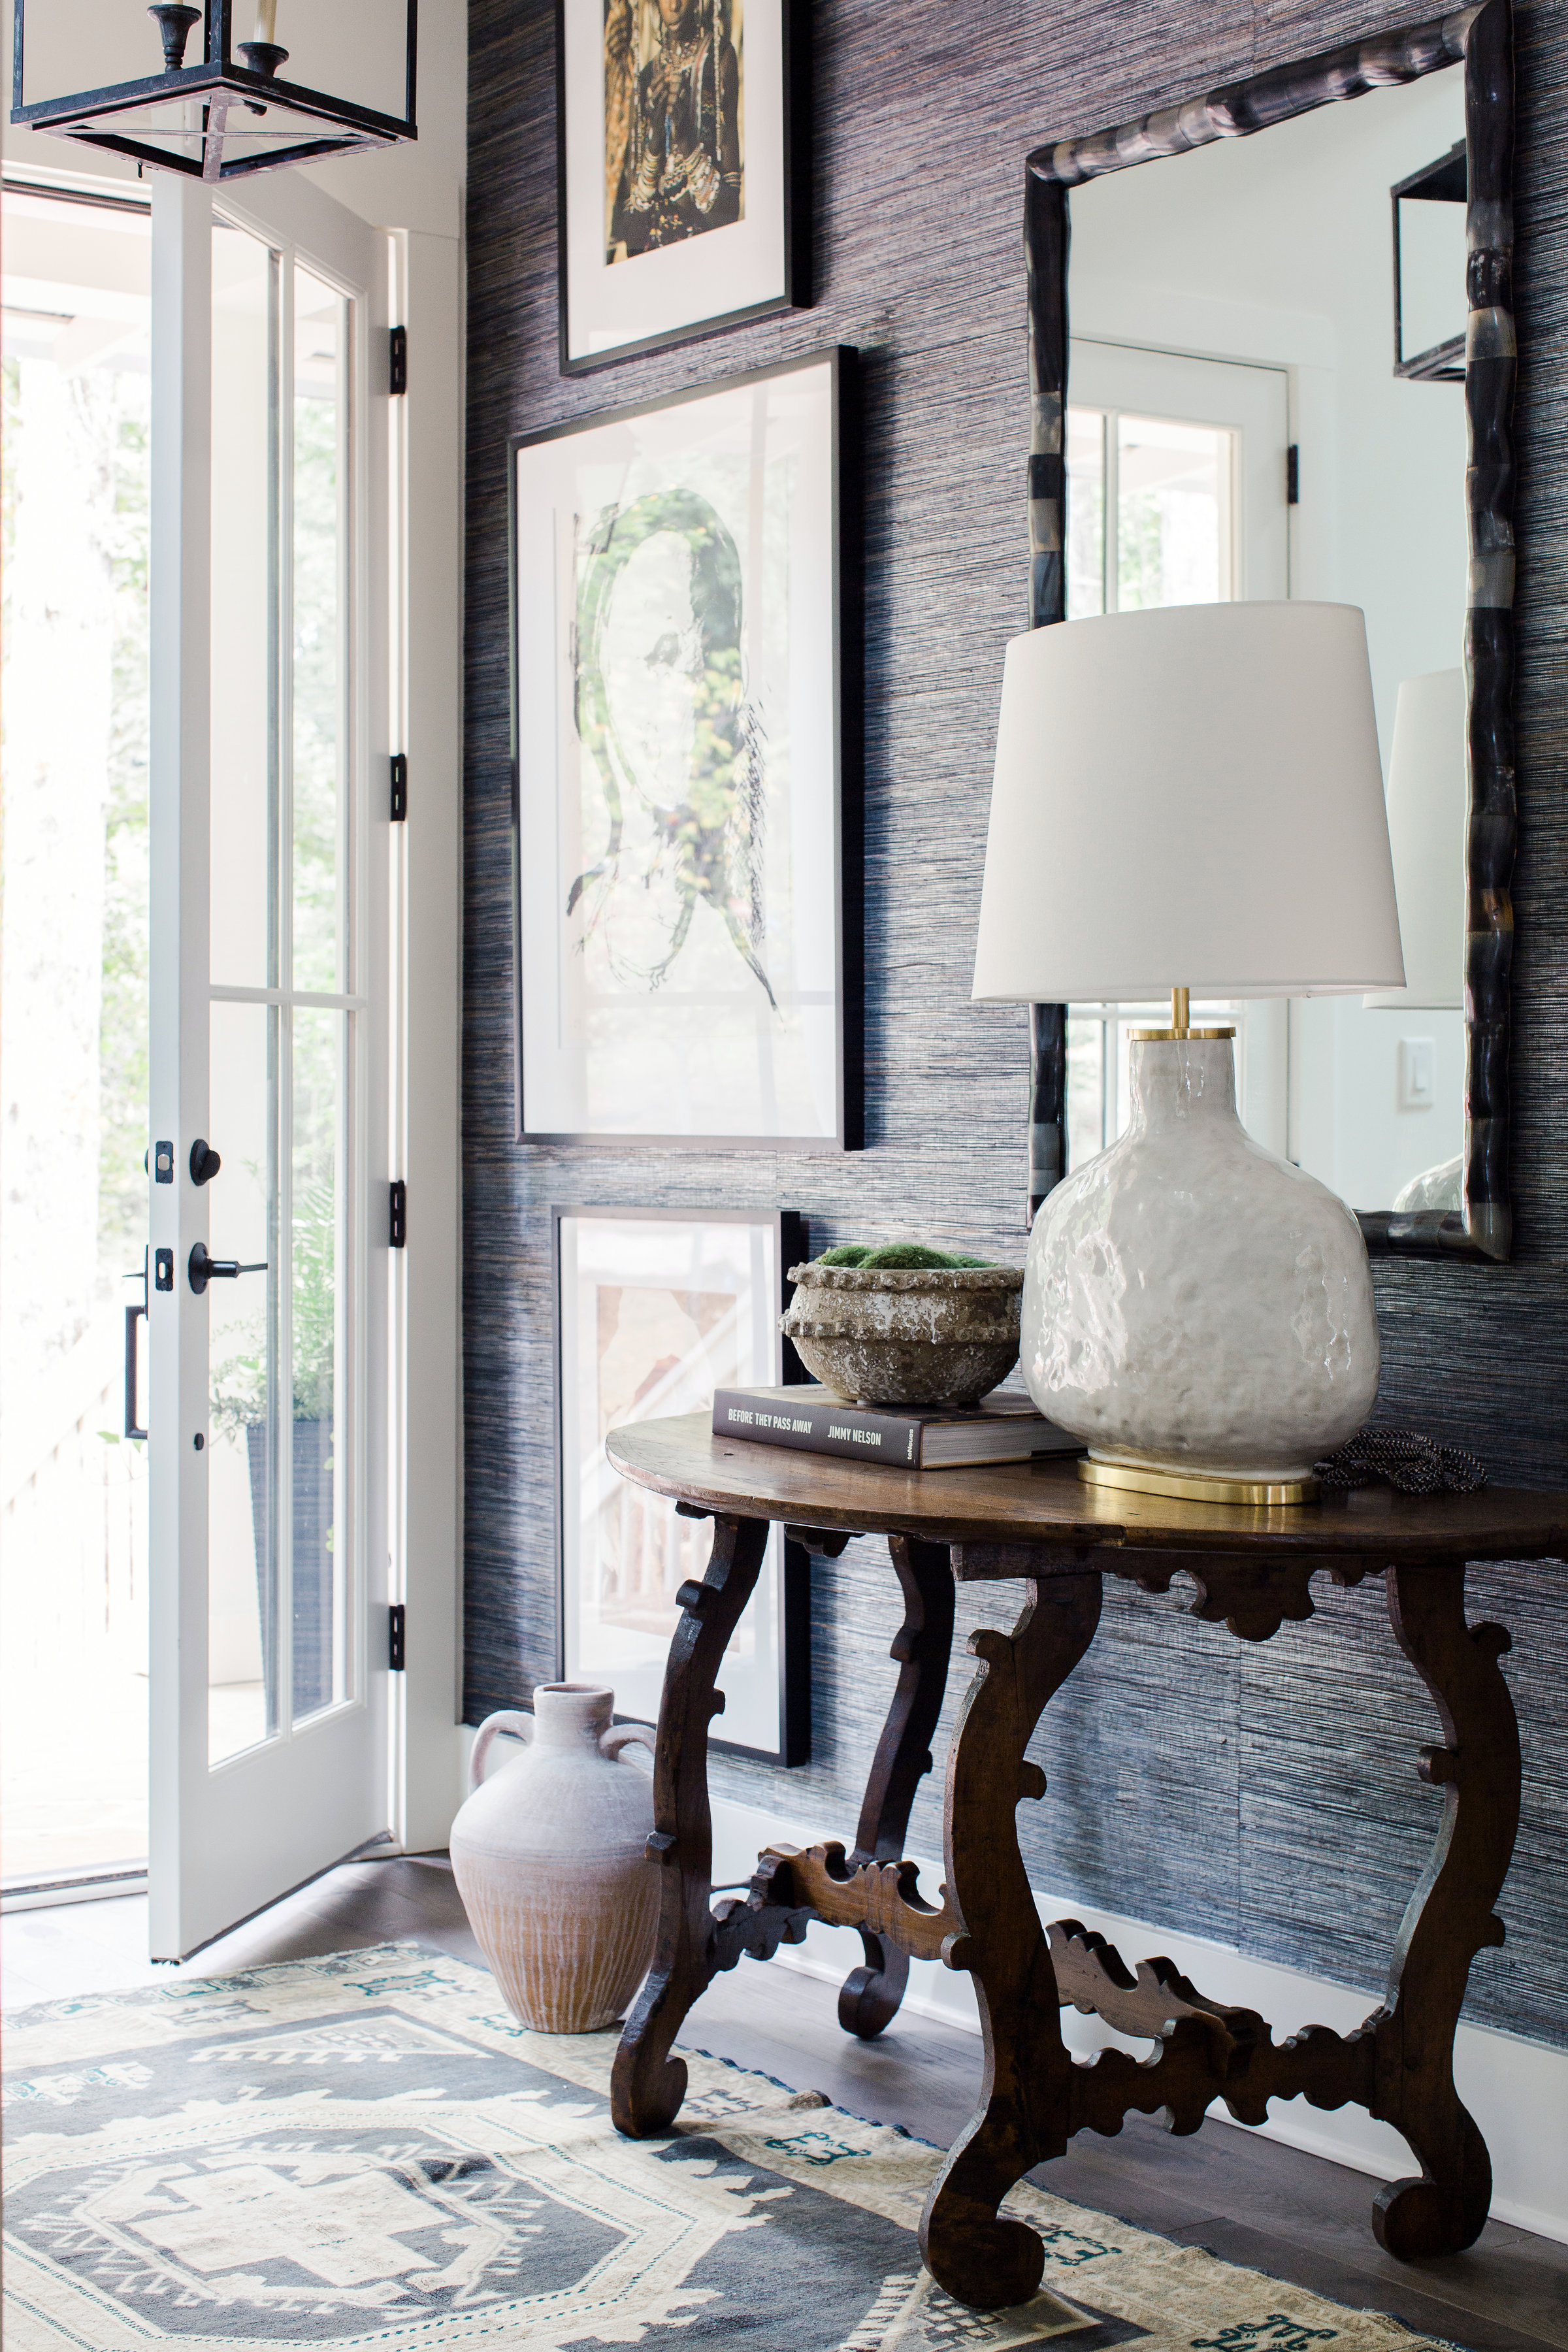 2018 Showhouse Foyer & Stairway by Anna-Wooten Loggins, A Wooten Interiors.  Photo by    Ali Harper Photography   .